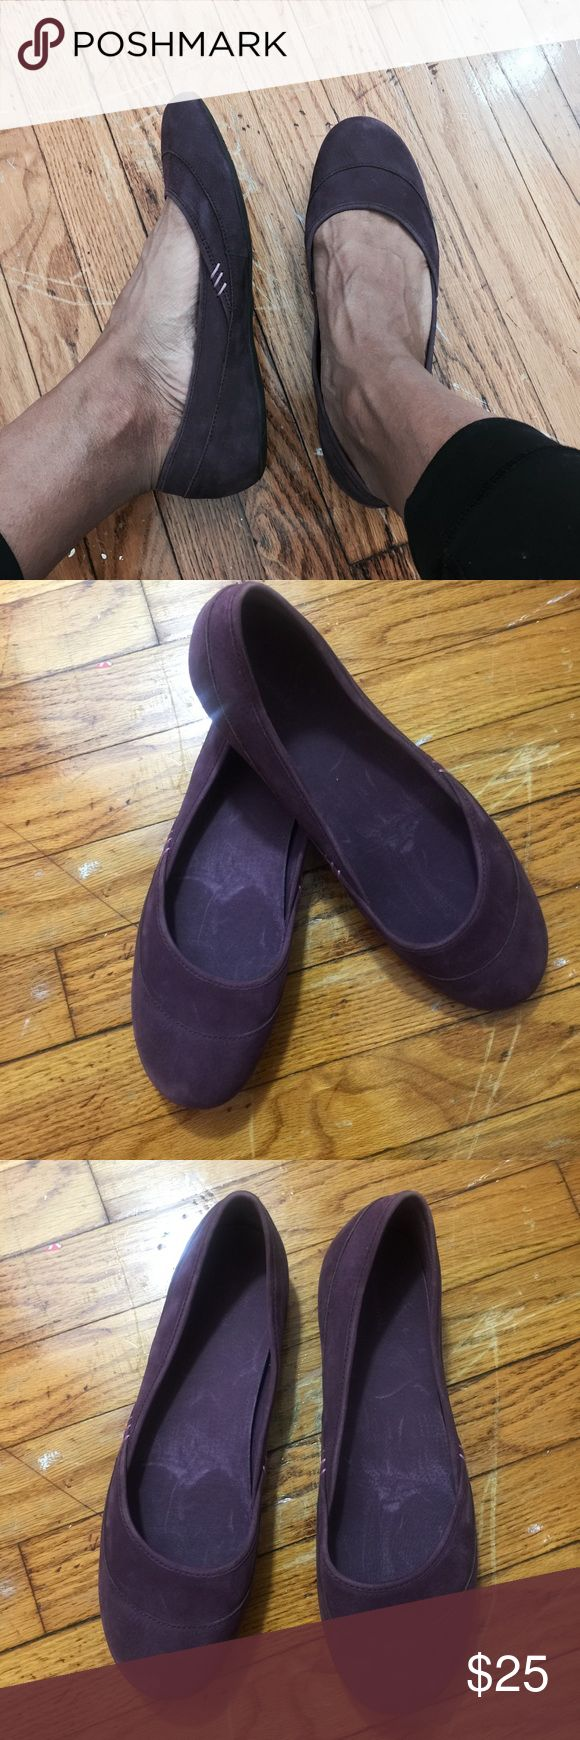 🍆Patagonia Soft Comfortable Flats Super cute purple soft leather flays with a great sole. Super confortable and easy to wear. Used but still in great condition. Minor marks throughout! Patagonia Shoes Flats & Loafers